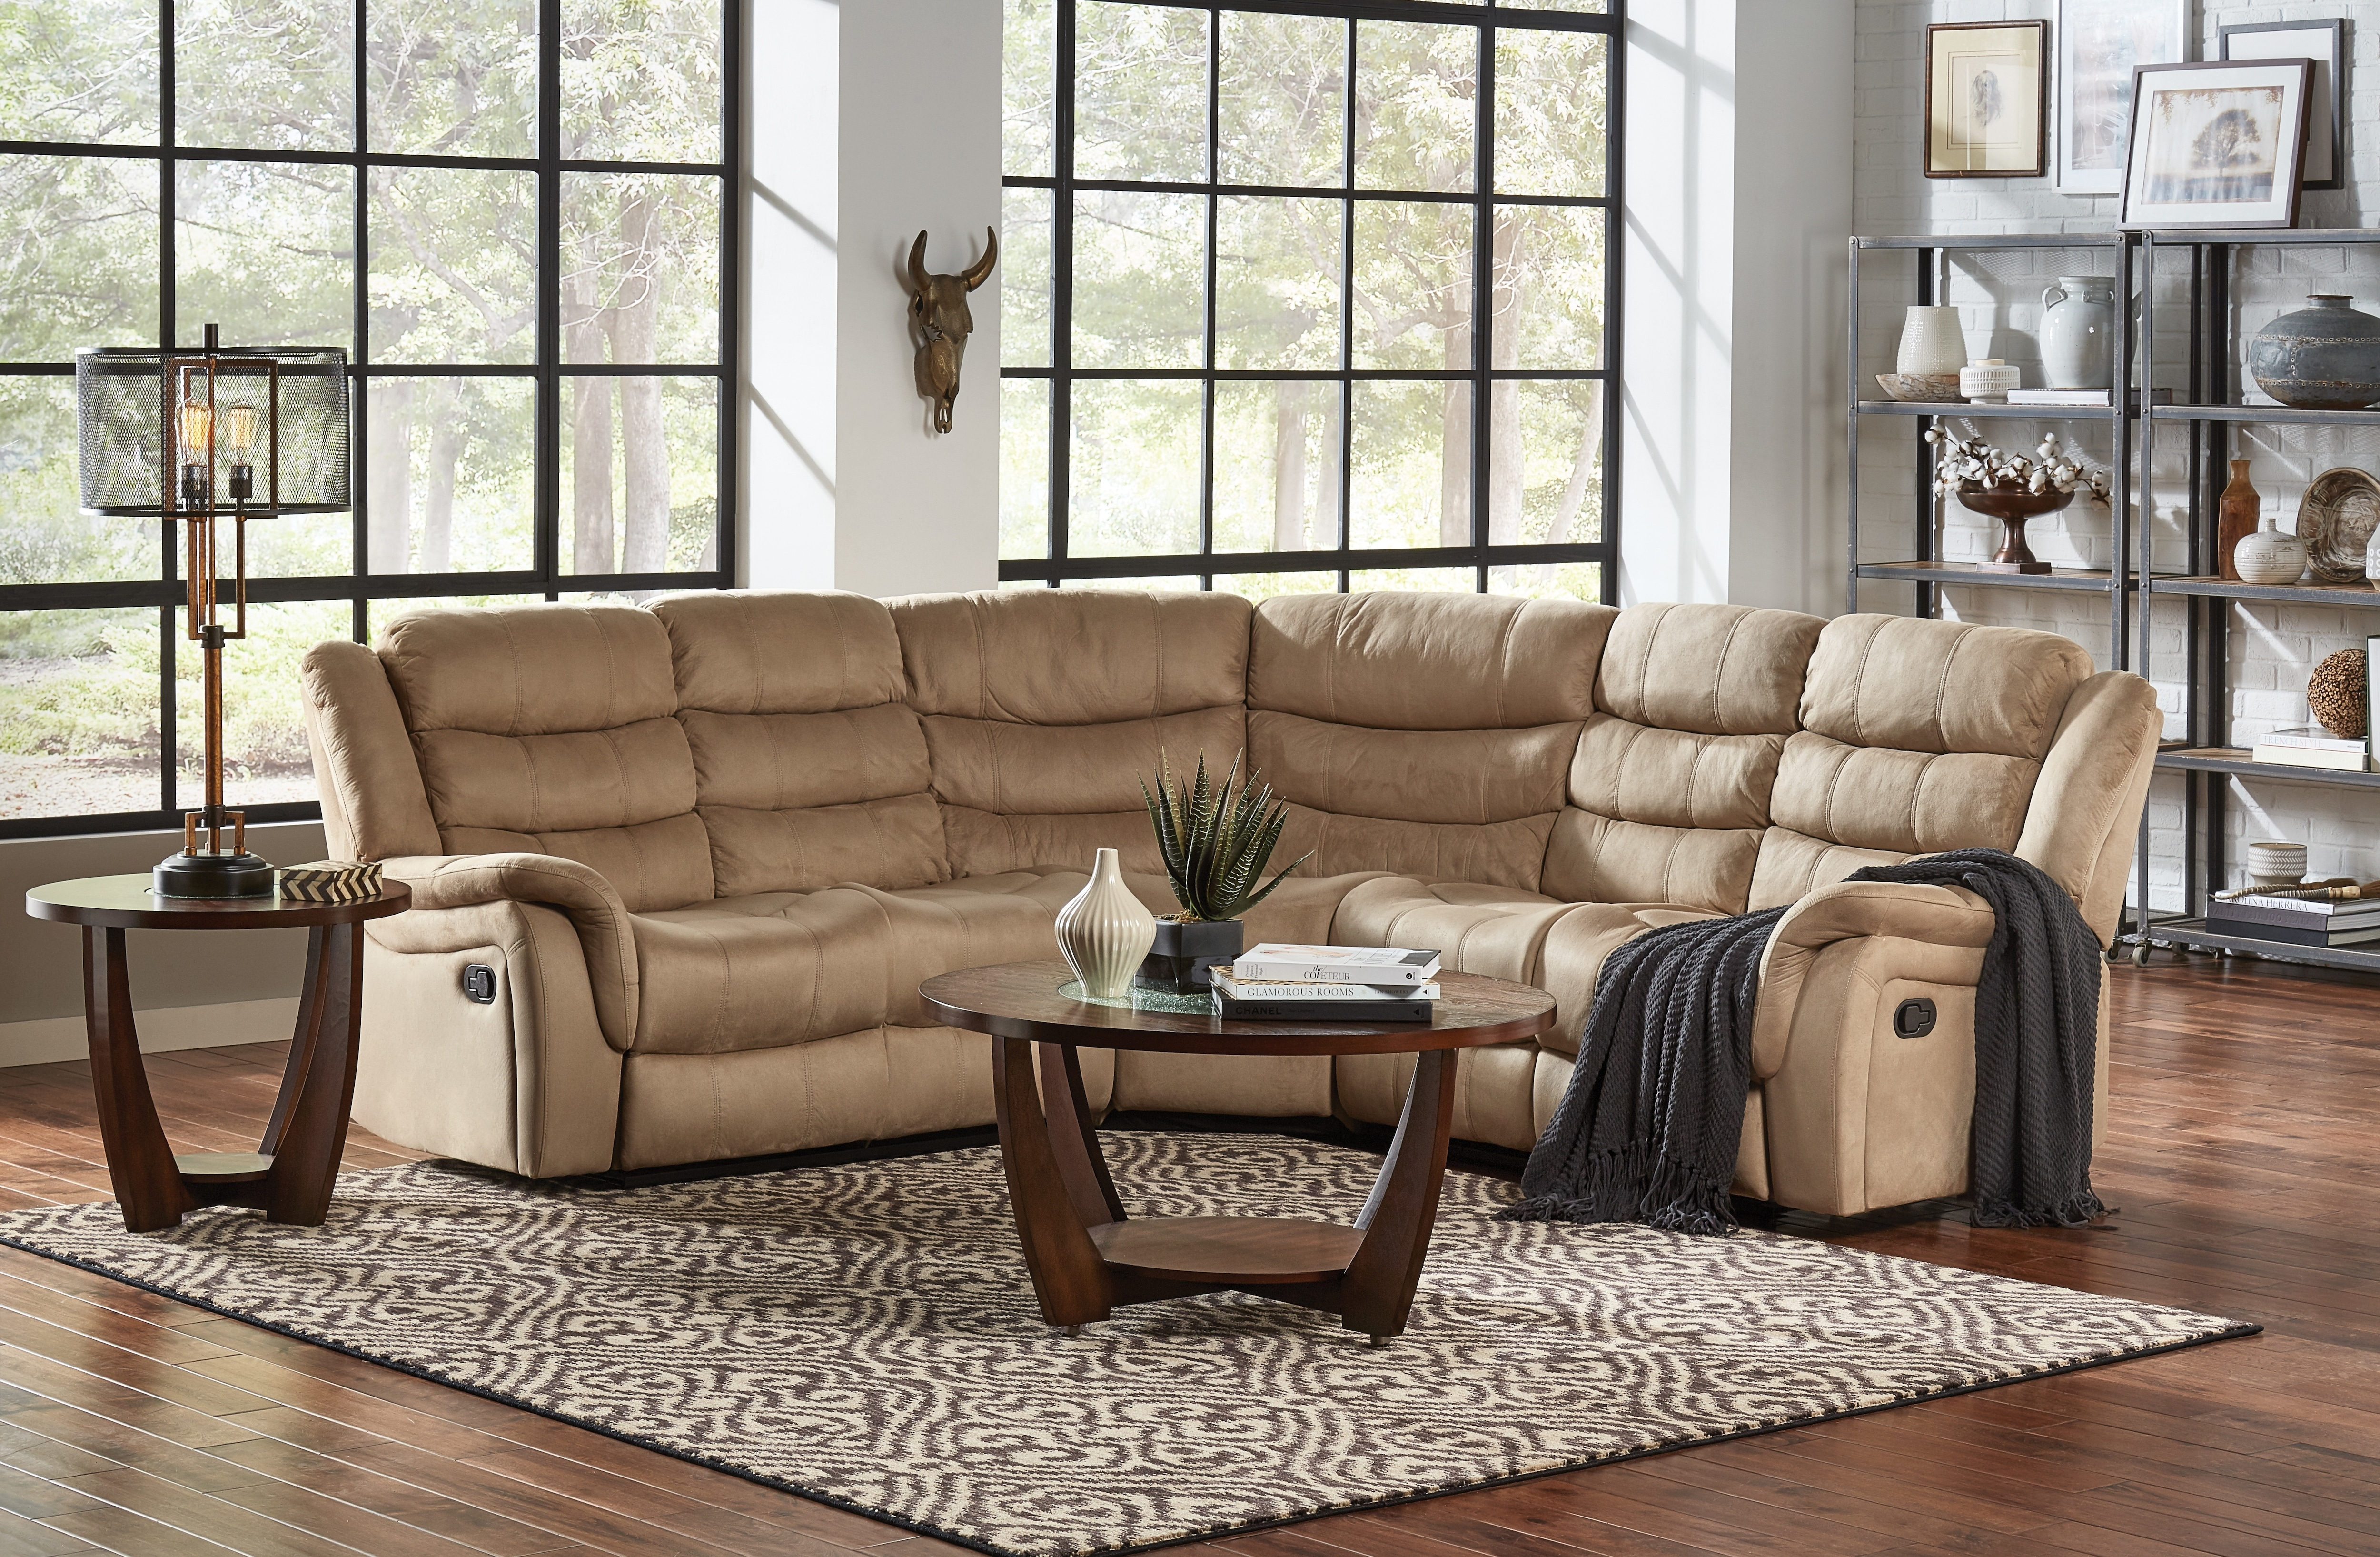 Benton 3Pc Reclining Sectional | Pertaining To Benton 4 Piece Sectionals (Image 4 of 25)